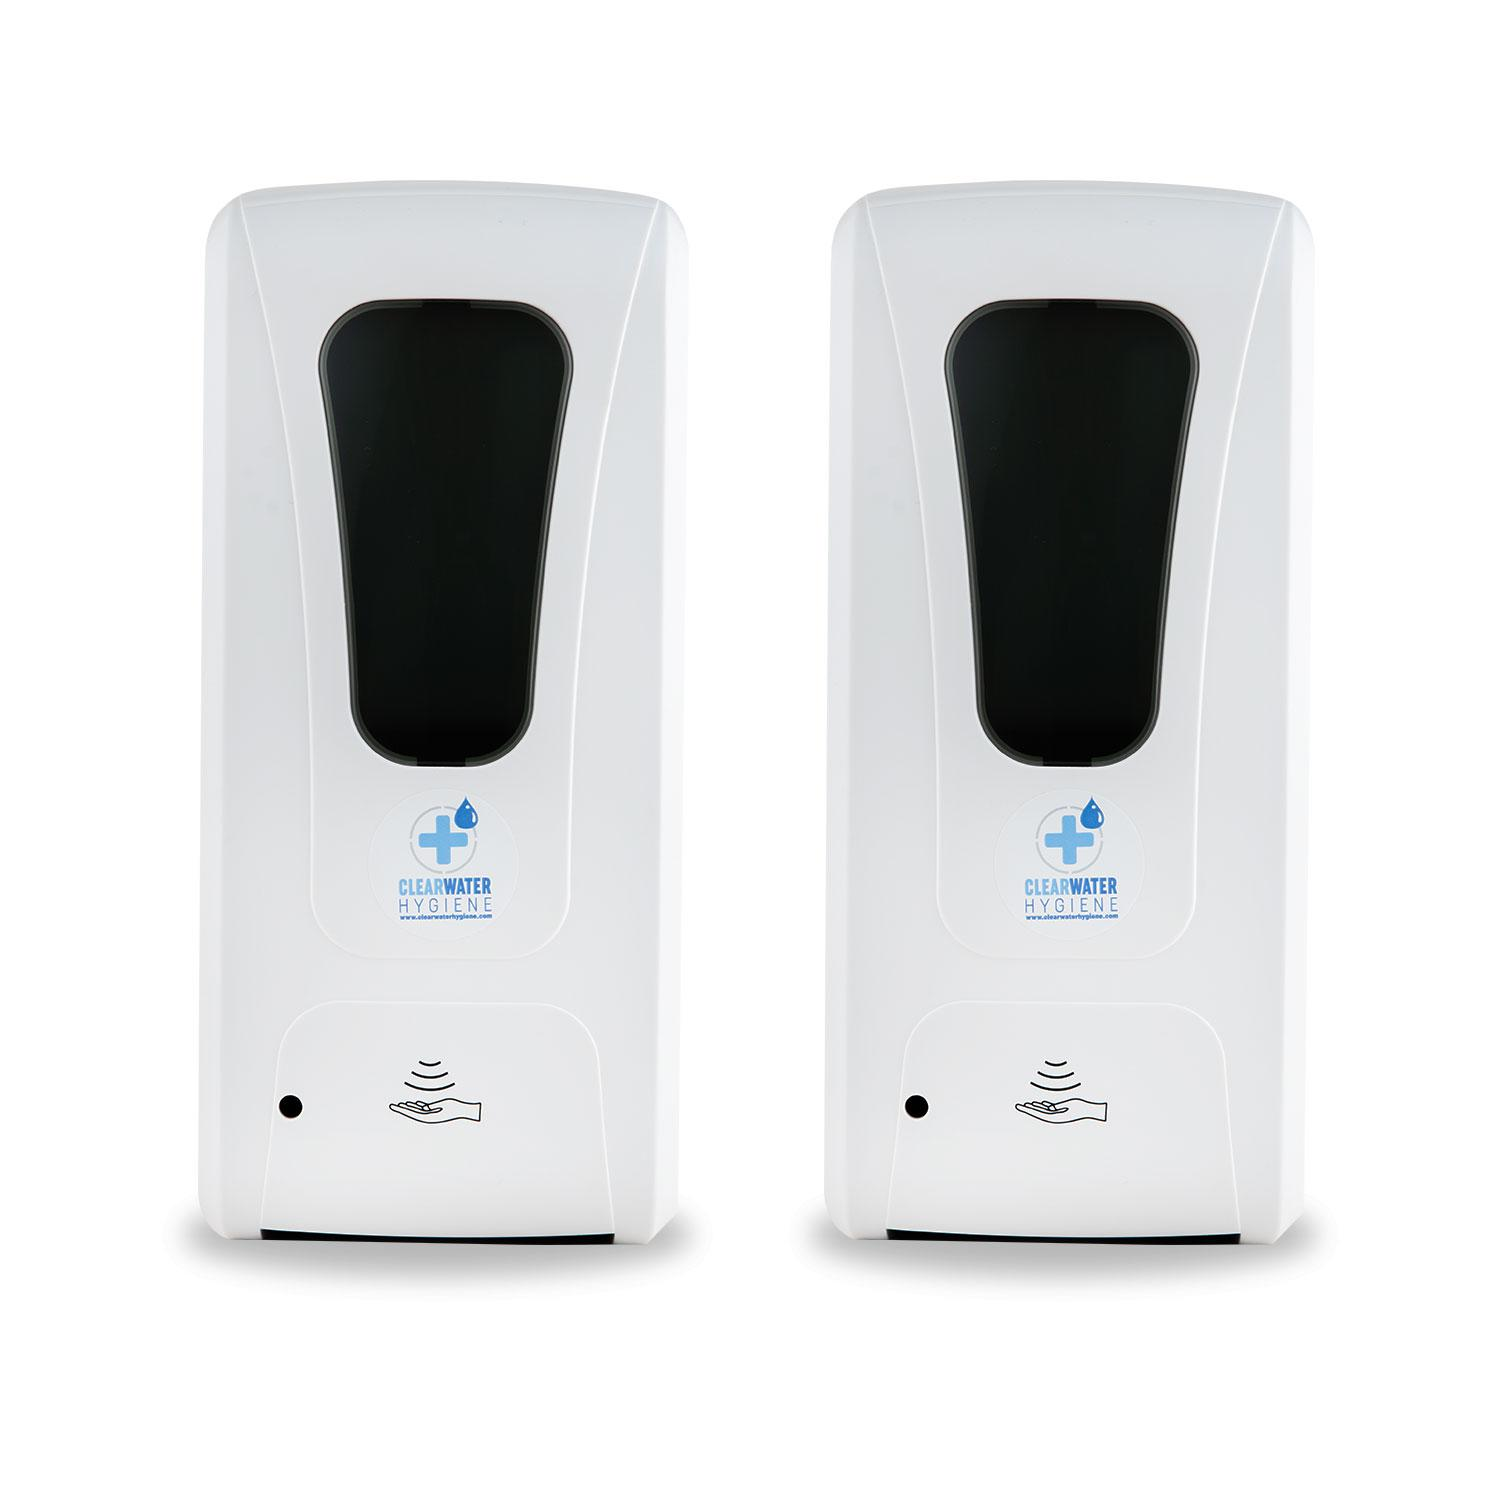 TWIN PACK: 2 x Motion Sensor Dispensers (MSD)